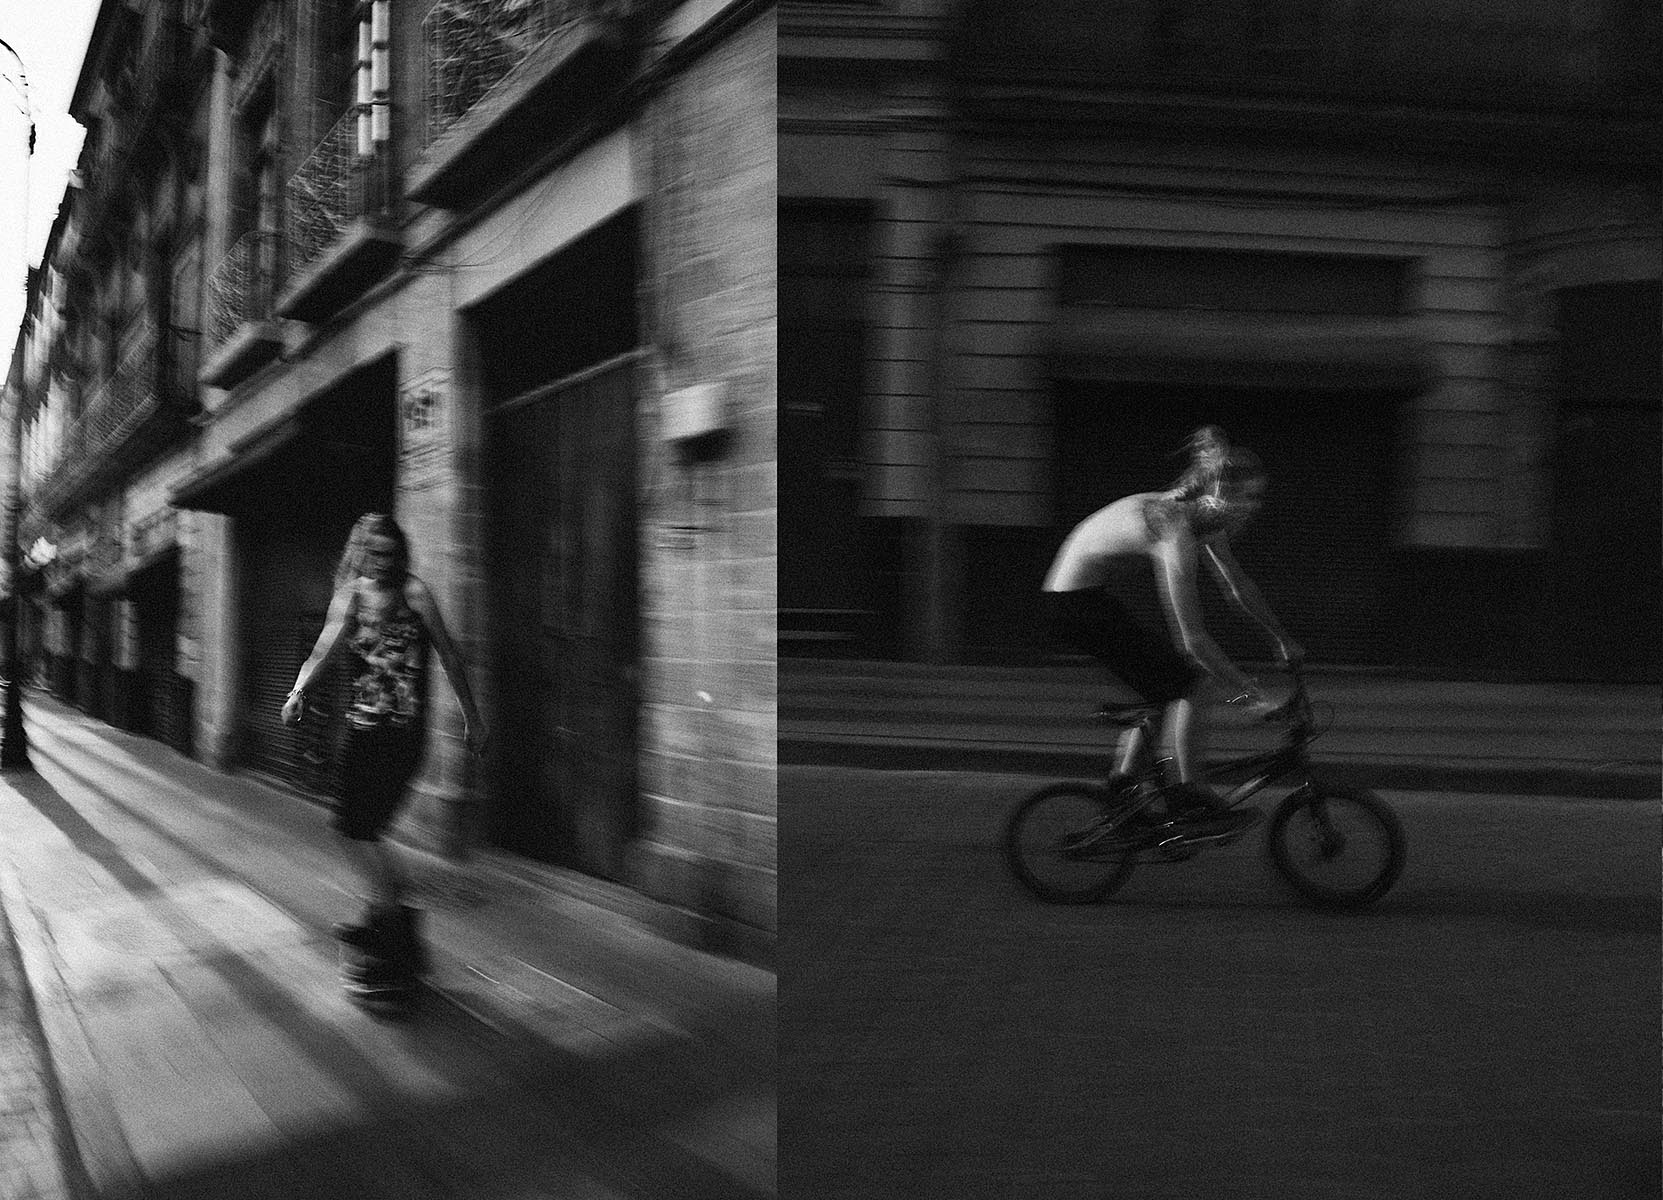 CHRIS-HUNT-FASHION-PHOTOGRAPHY-EDITORIAL-Mexico-City-Streets-Skateboard-BMX-022